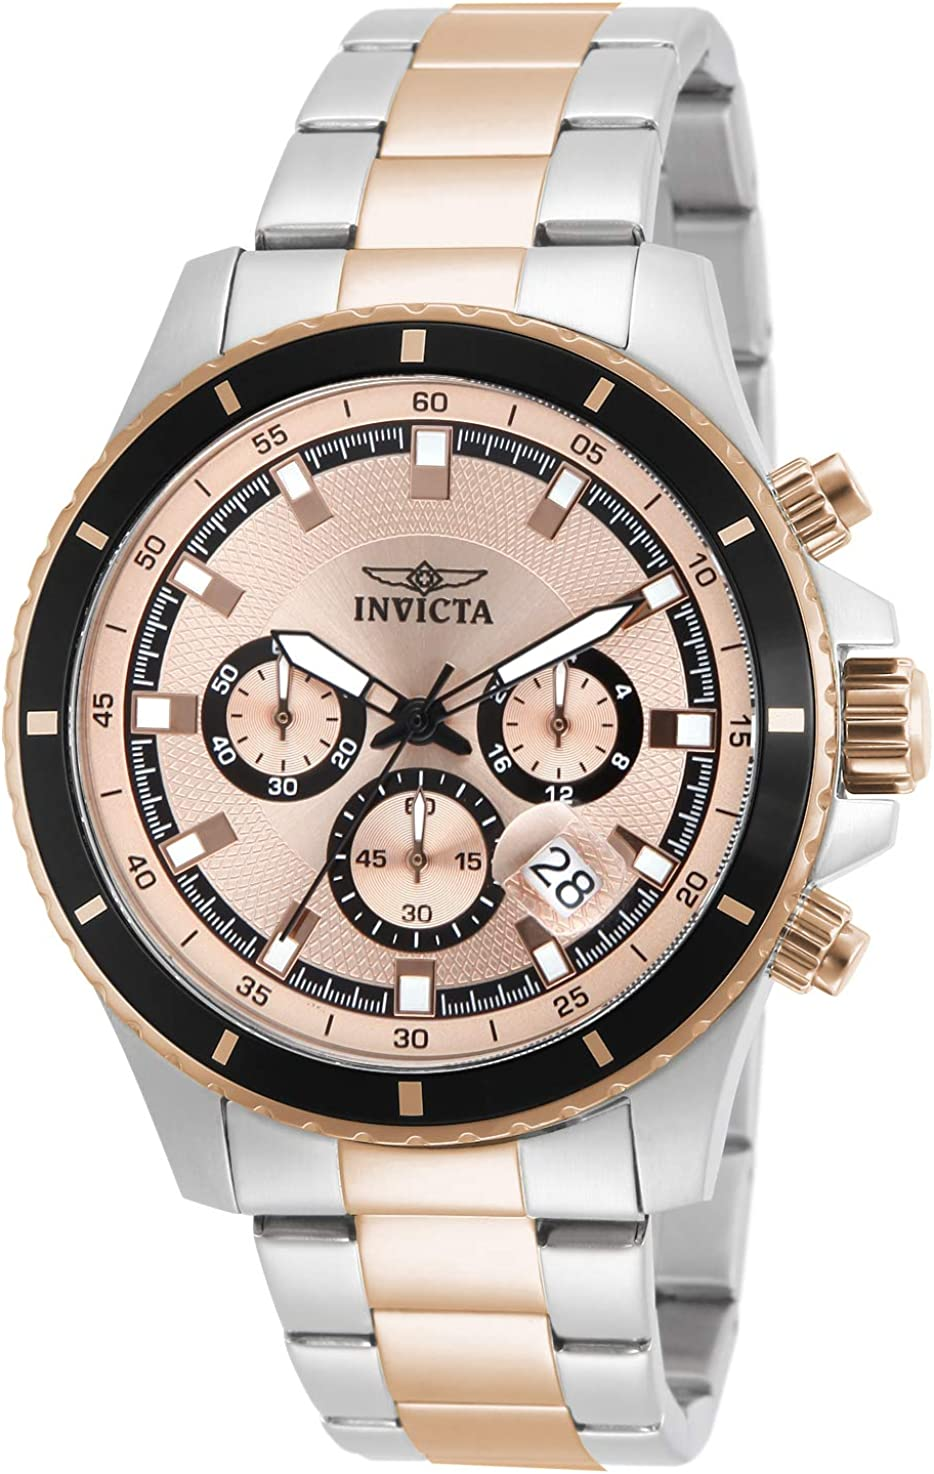 Invicta Men s 12457 Pro Diver Chronograph Rose Tone Textured Dial Stainless Steel Watch